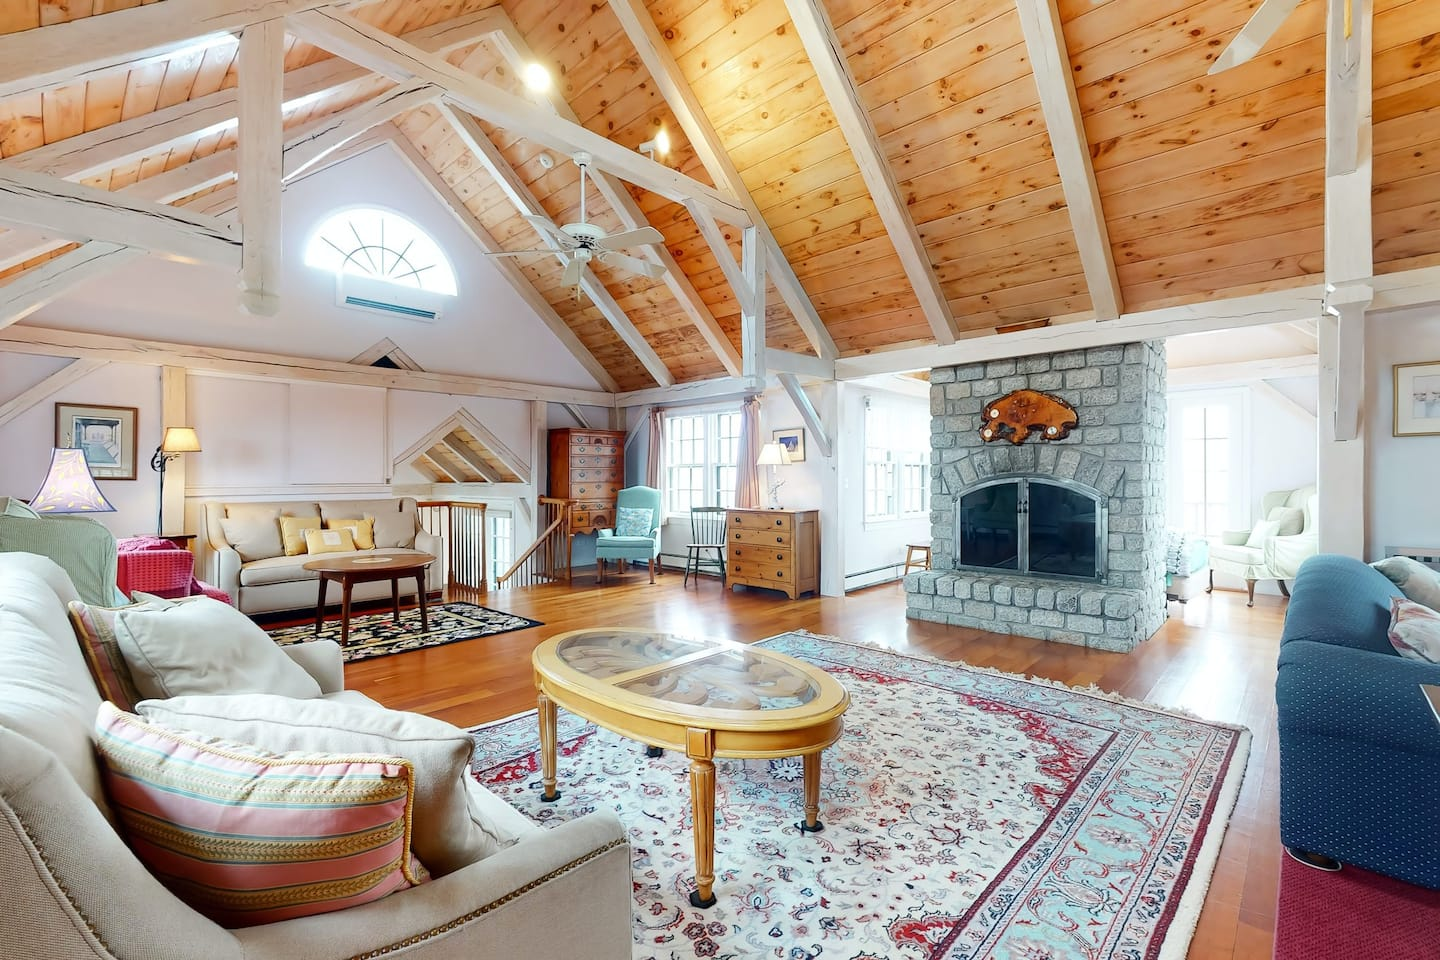 Pet-Friendly Airbnb Nantucket Island